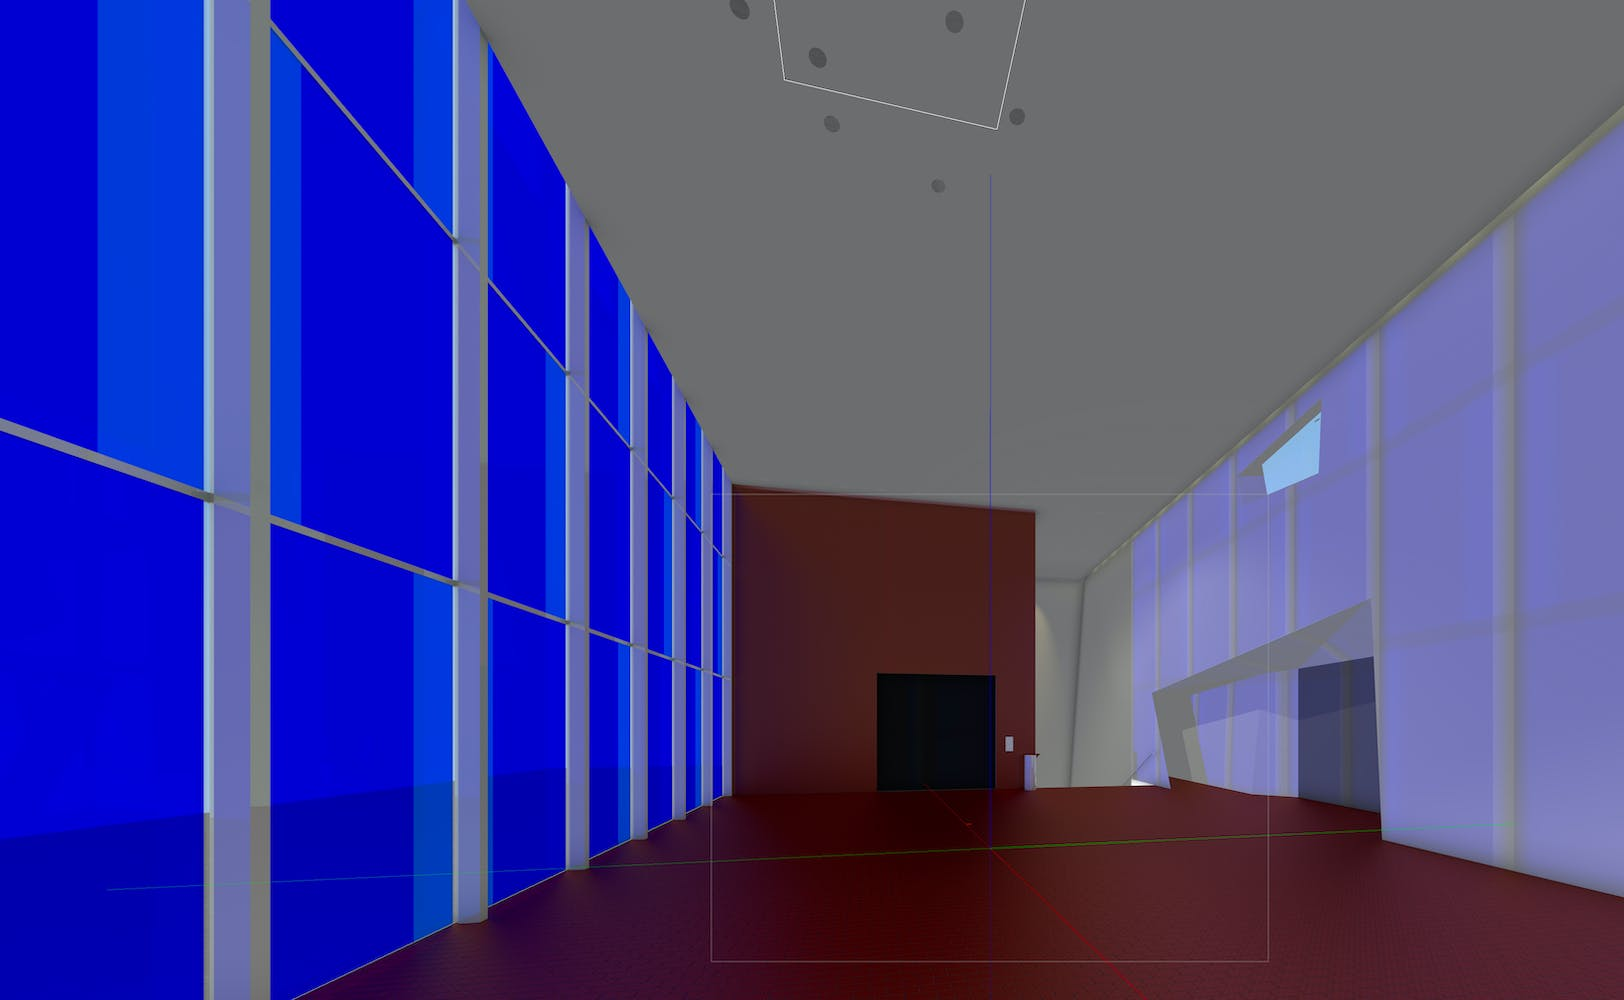 Digital rendering of lounge with giant windows covered with deep blue film